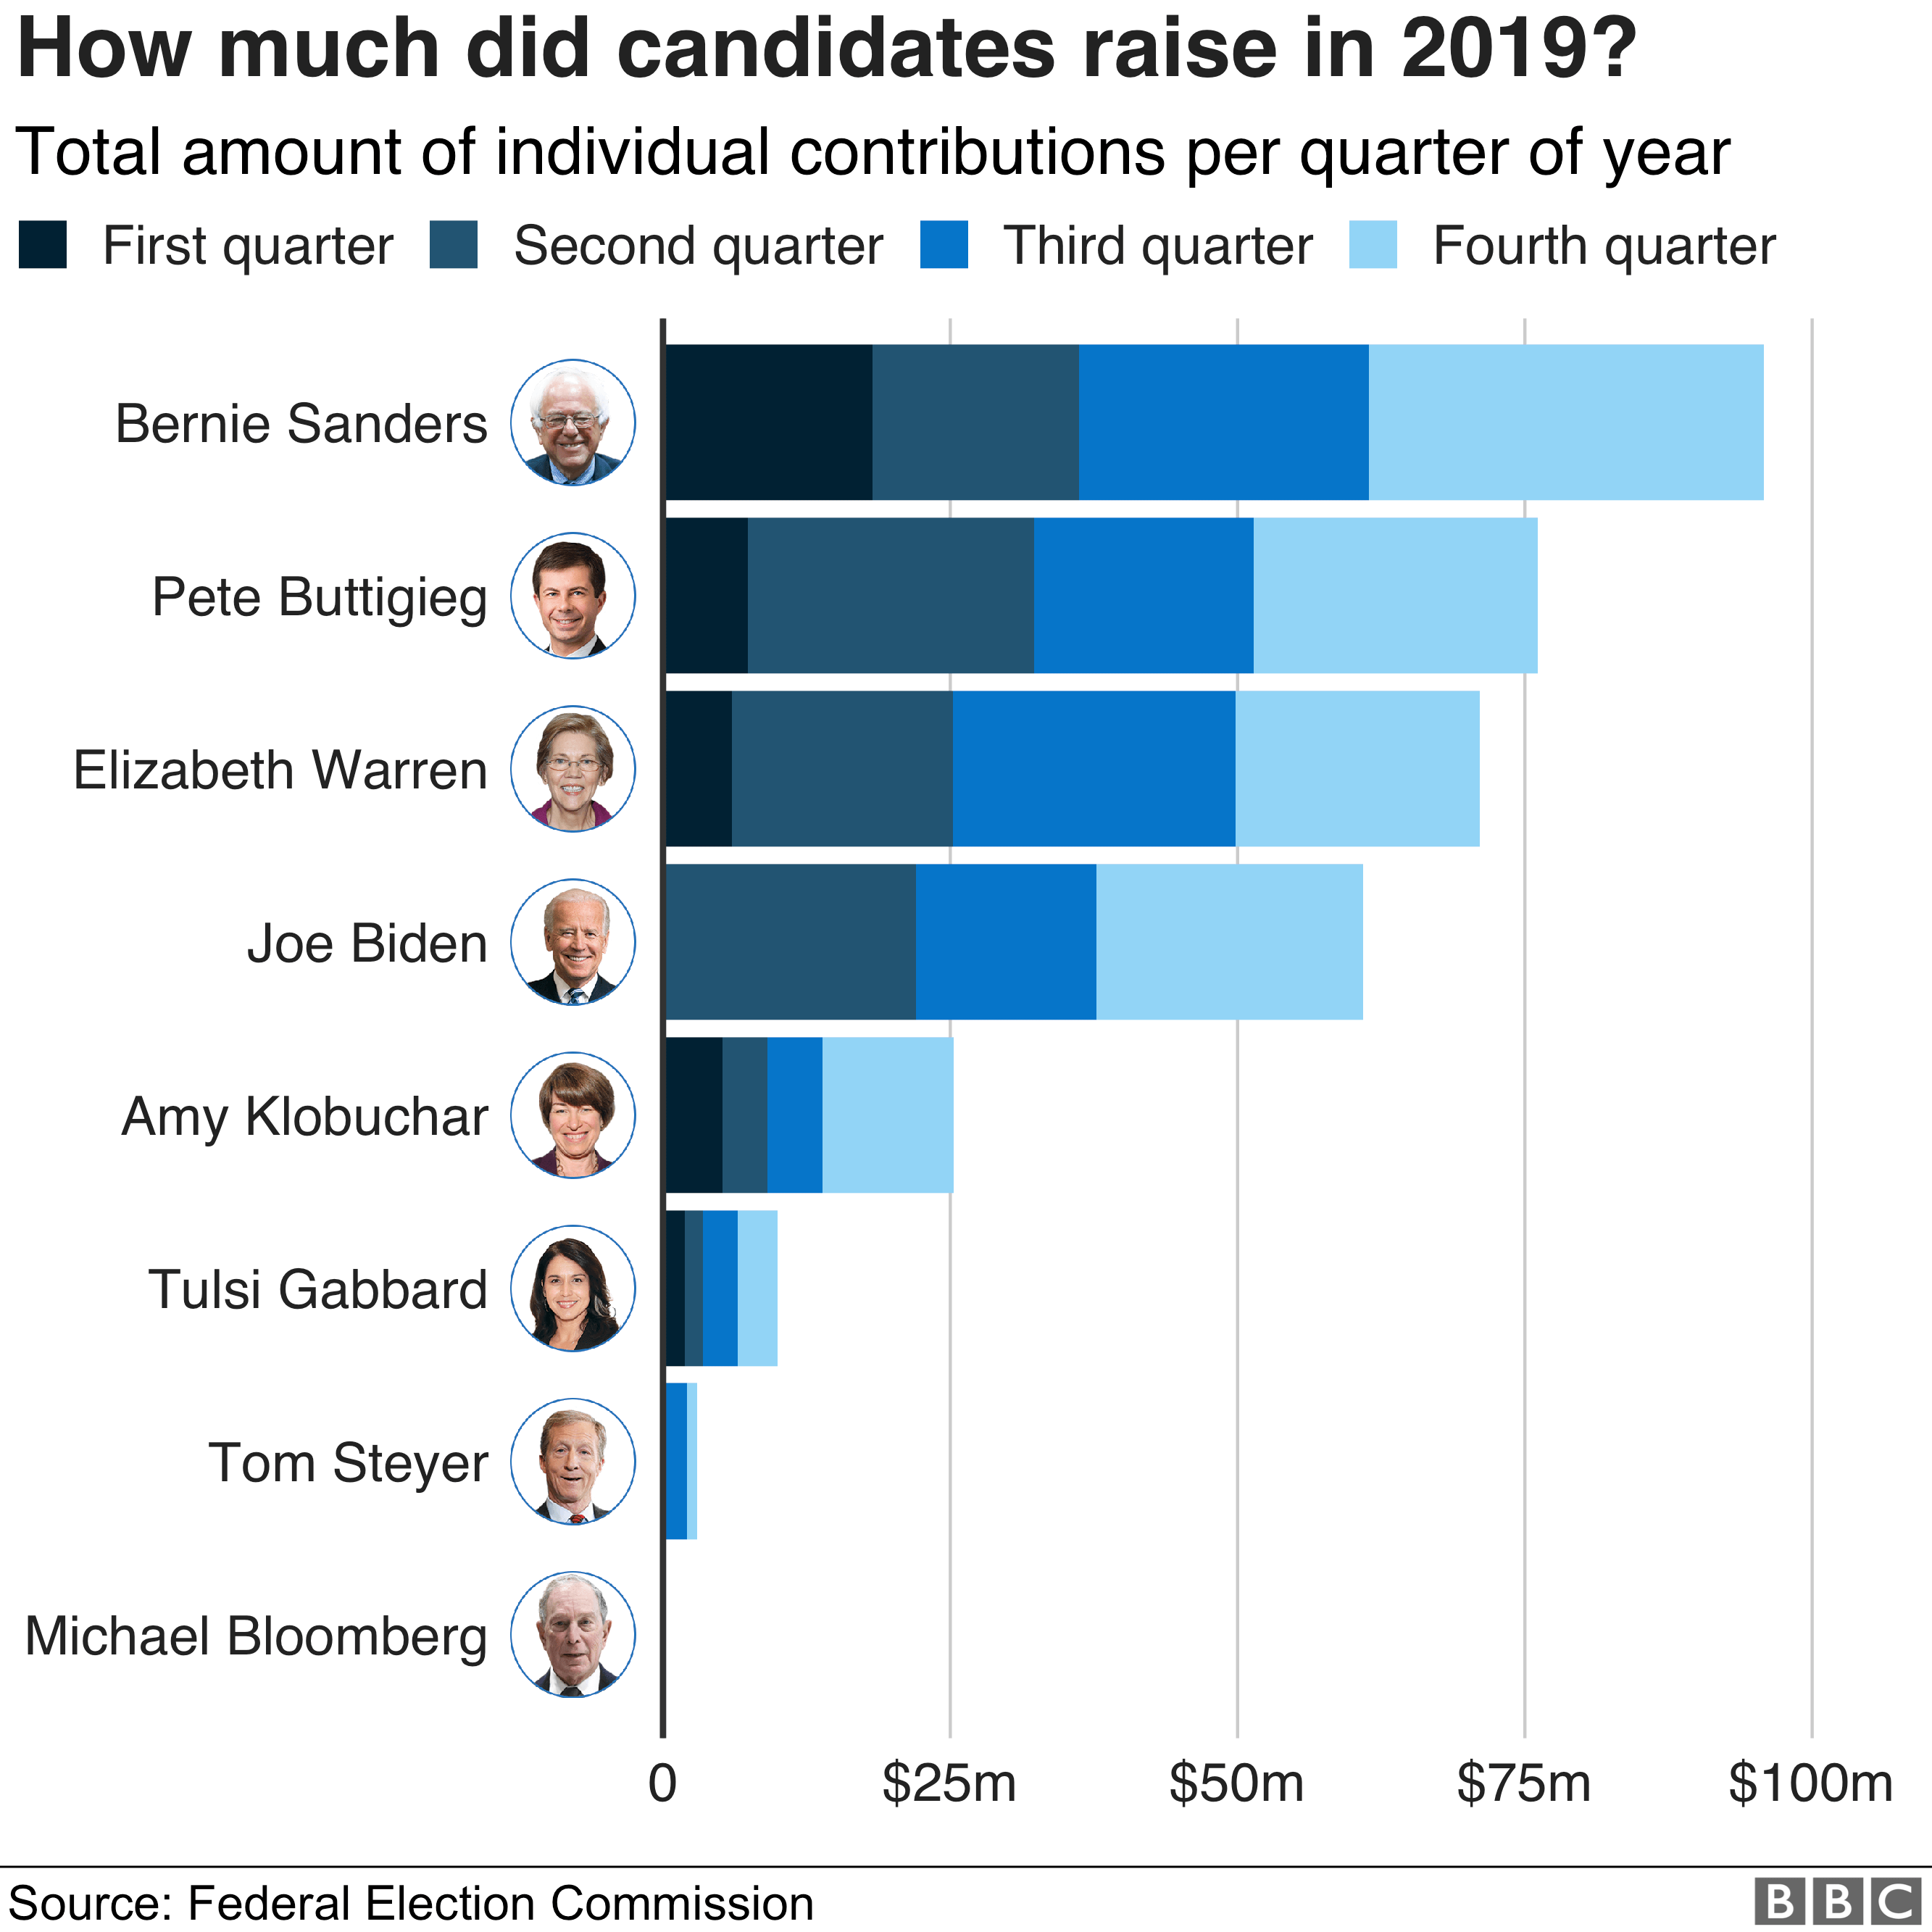 Chart showing how much candidates raised in 2019 - Bernie Sanders led the field, on just under $100m